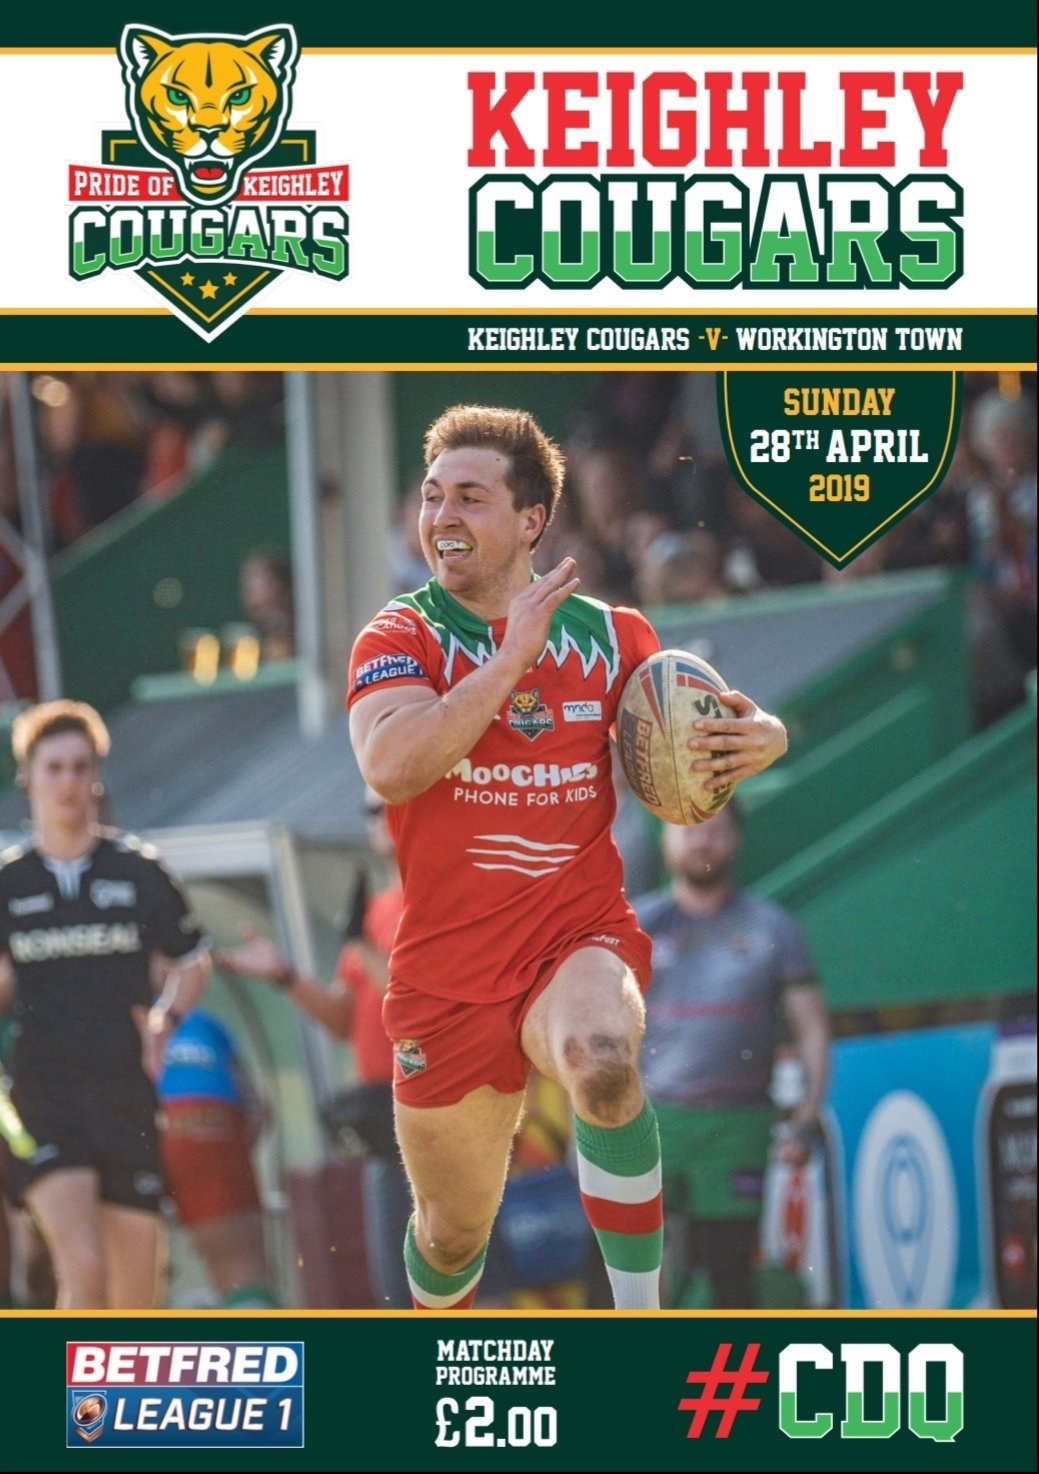 My shot of Cougars' Taylor Prell scoring a long distance try featured on the cover of the club programme